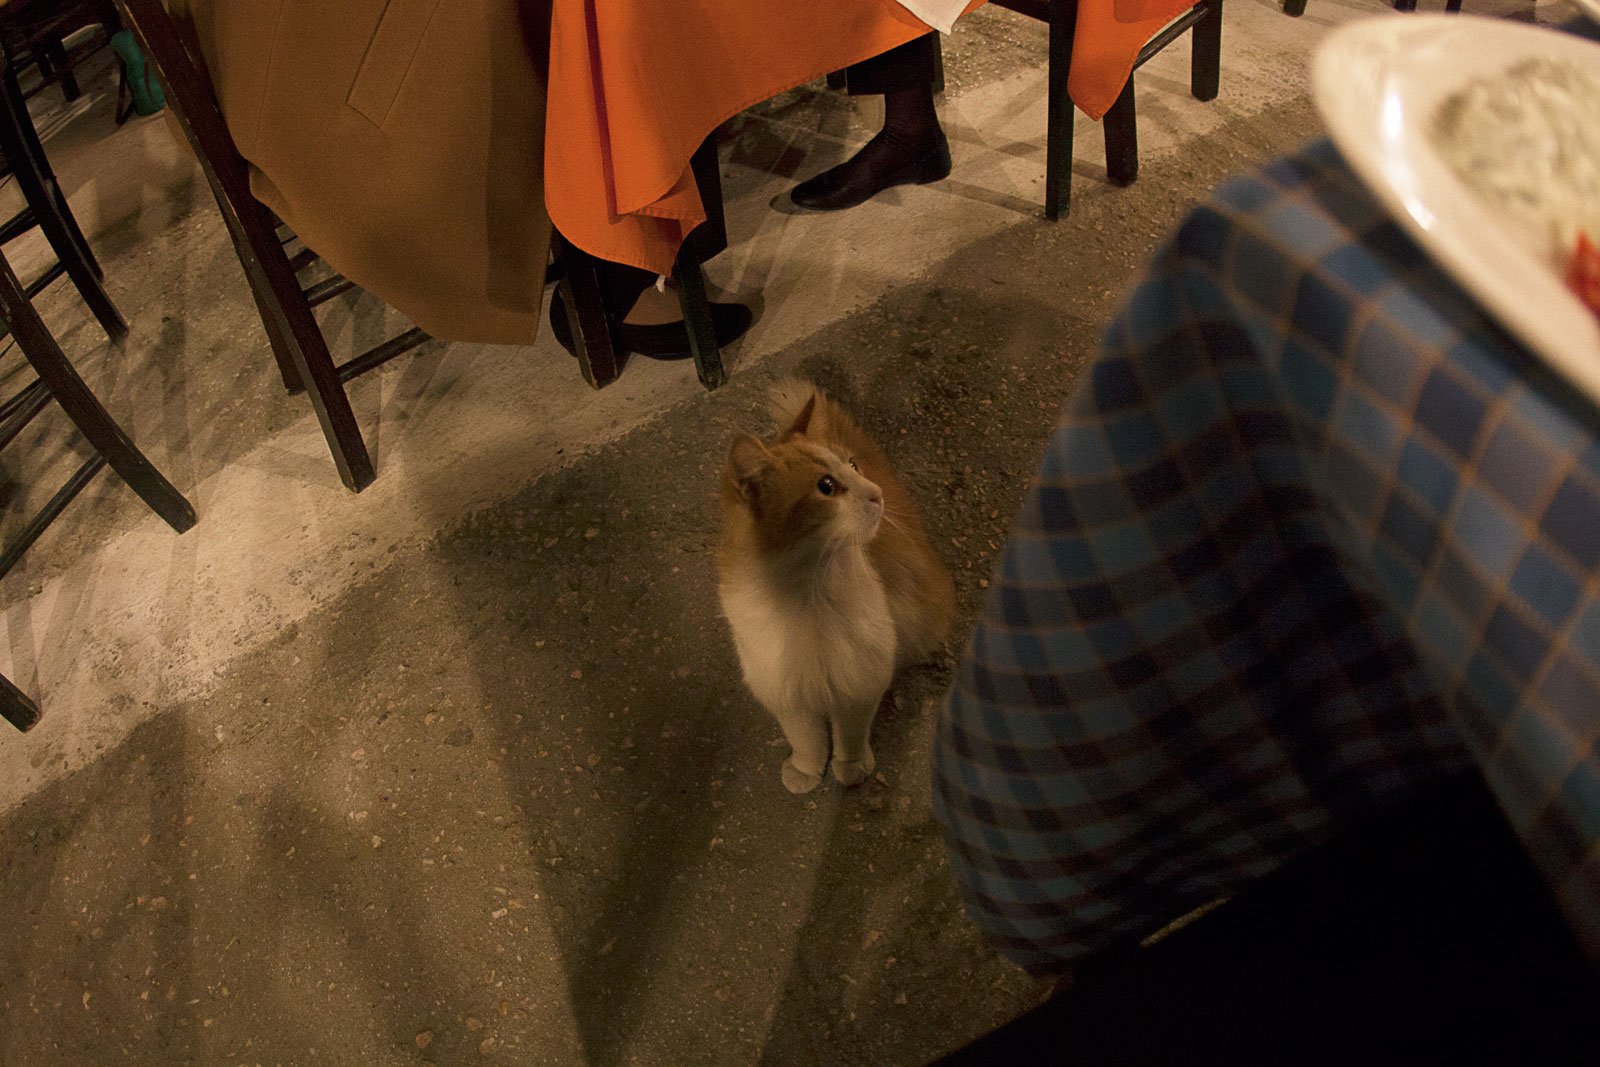 A cat hoping for scraps during dinner